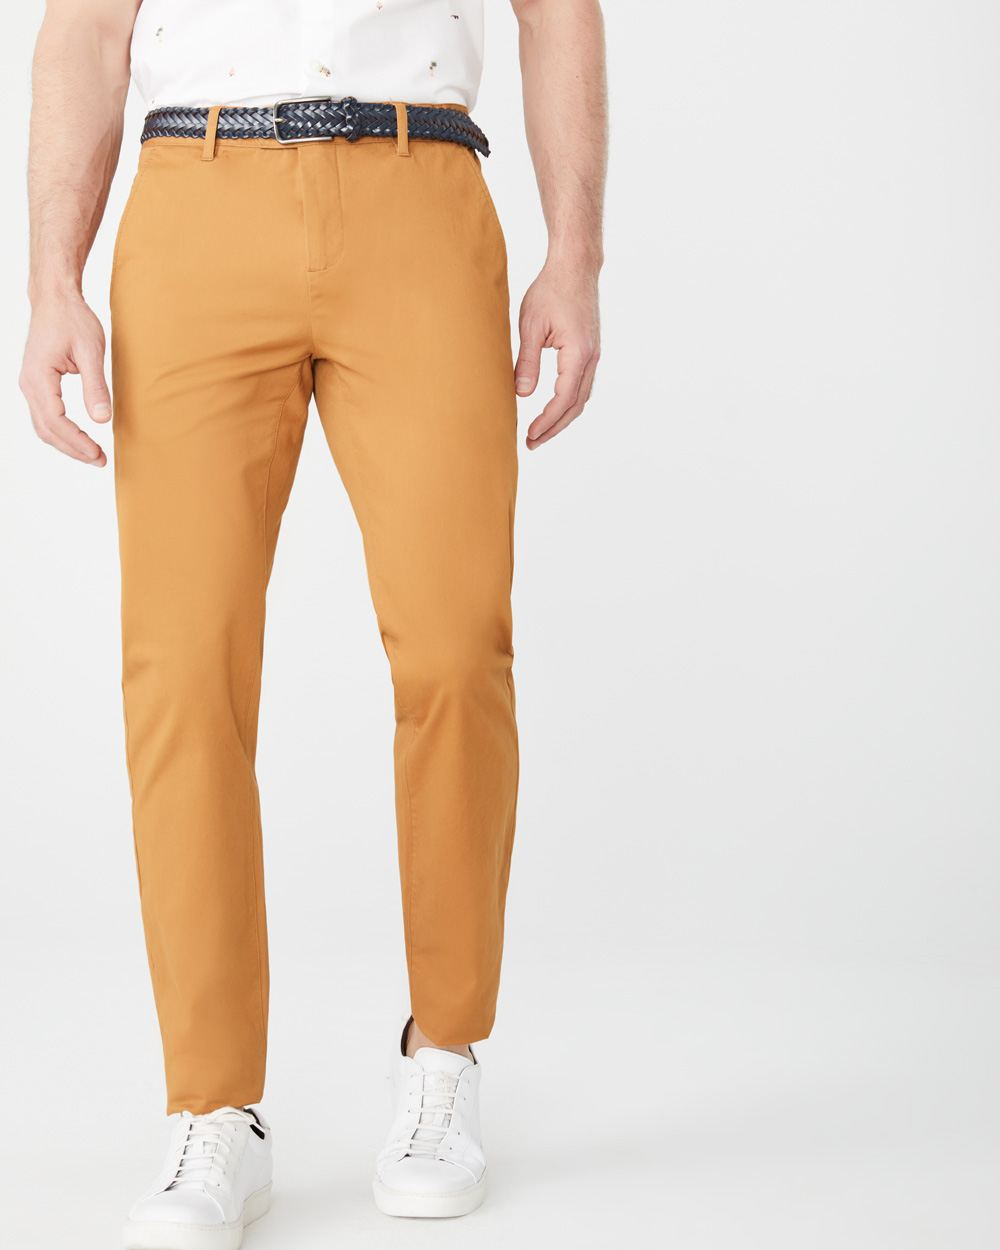 Slim fit chino pant - 34''